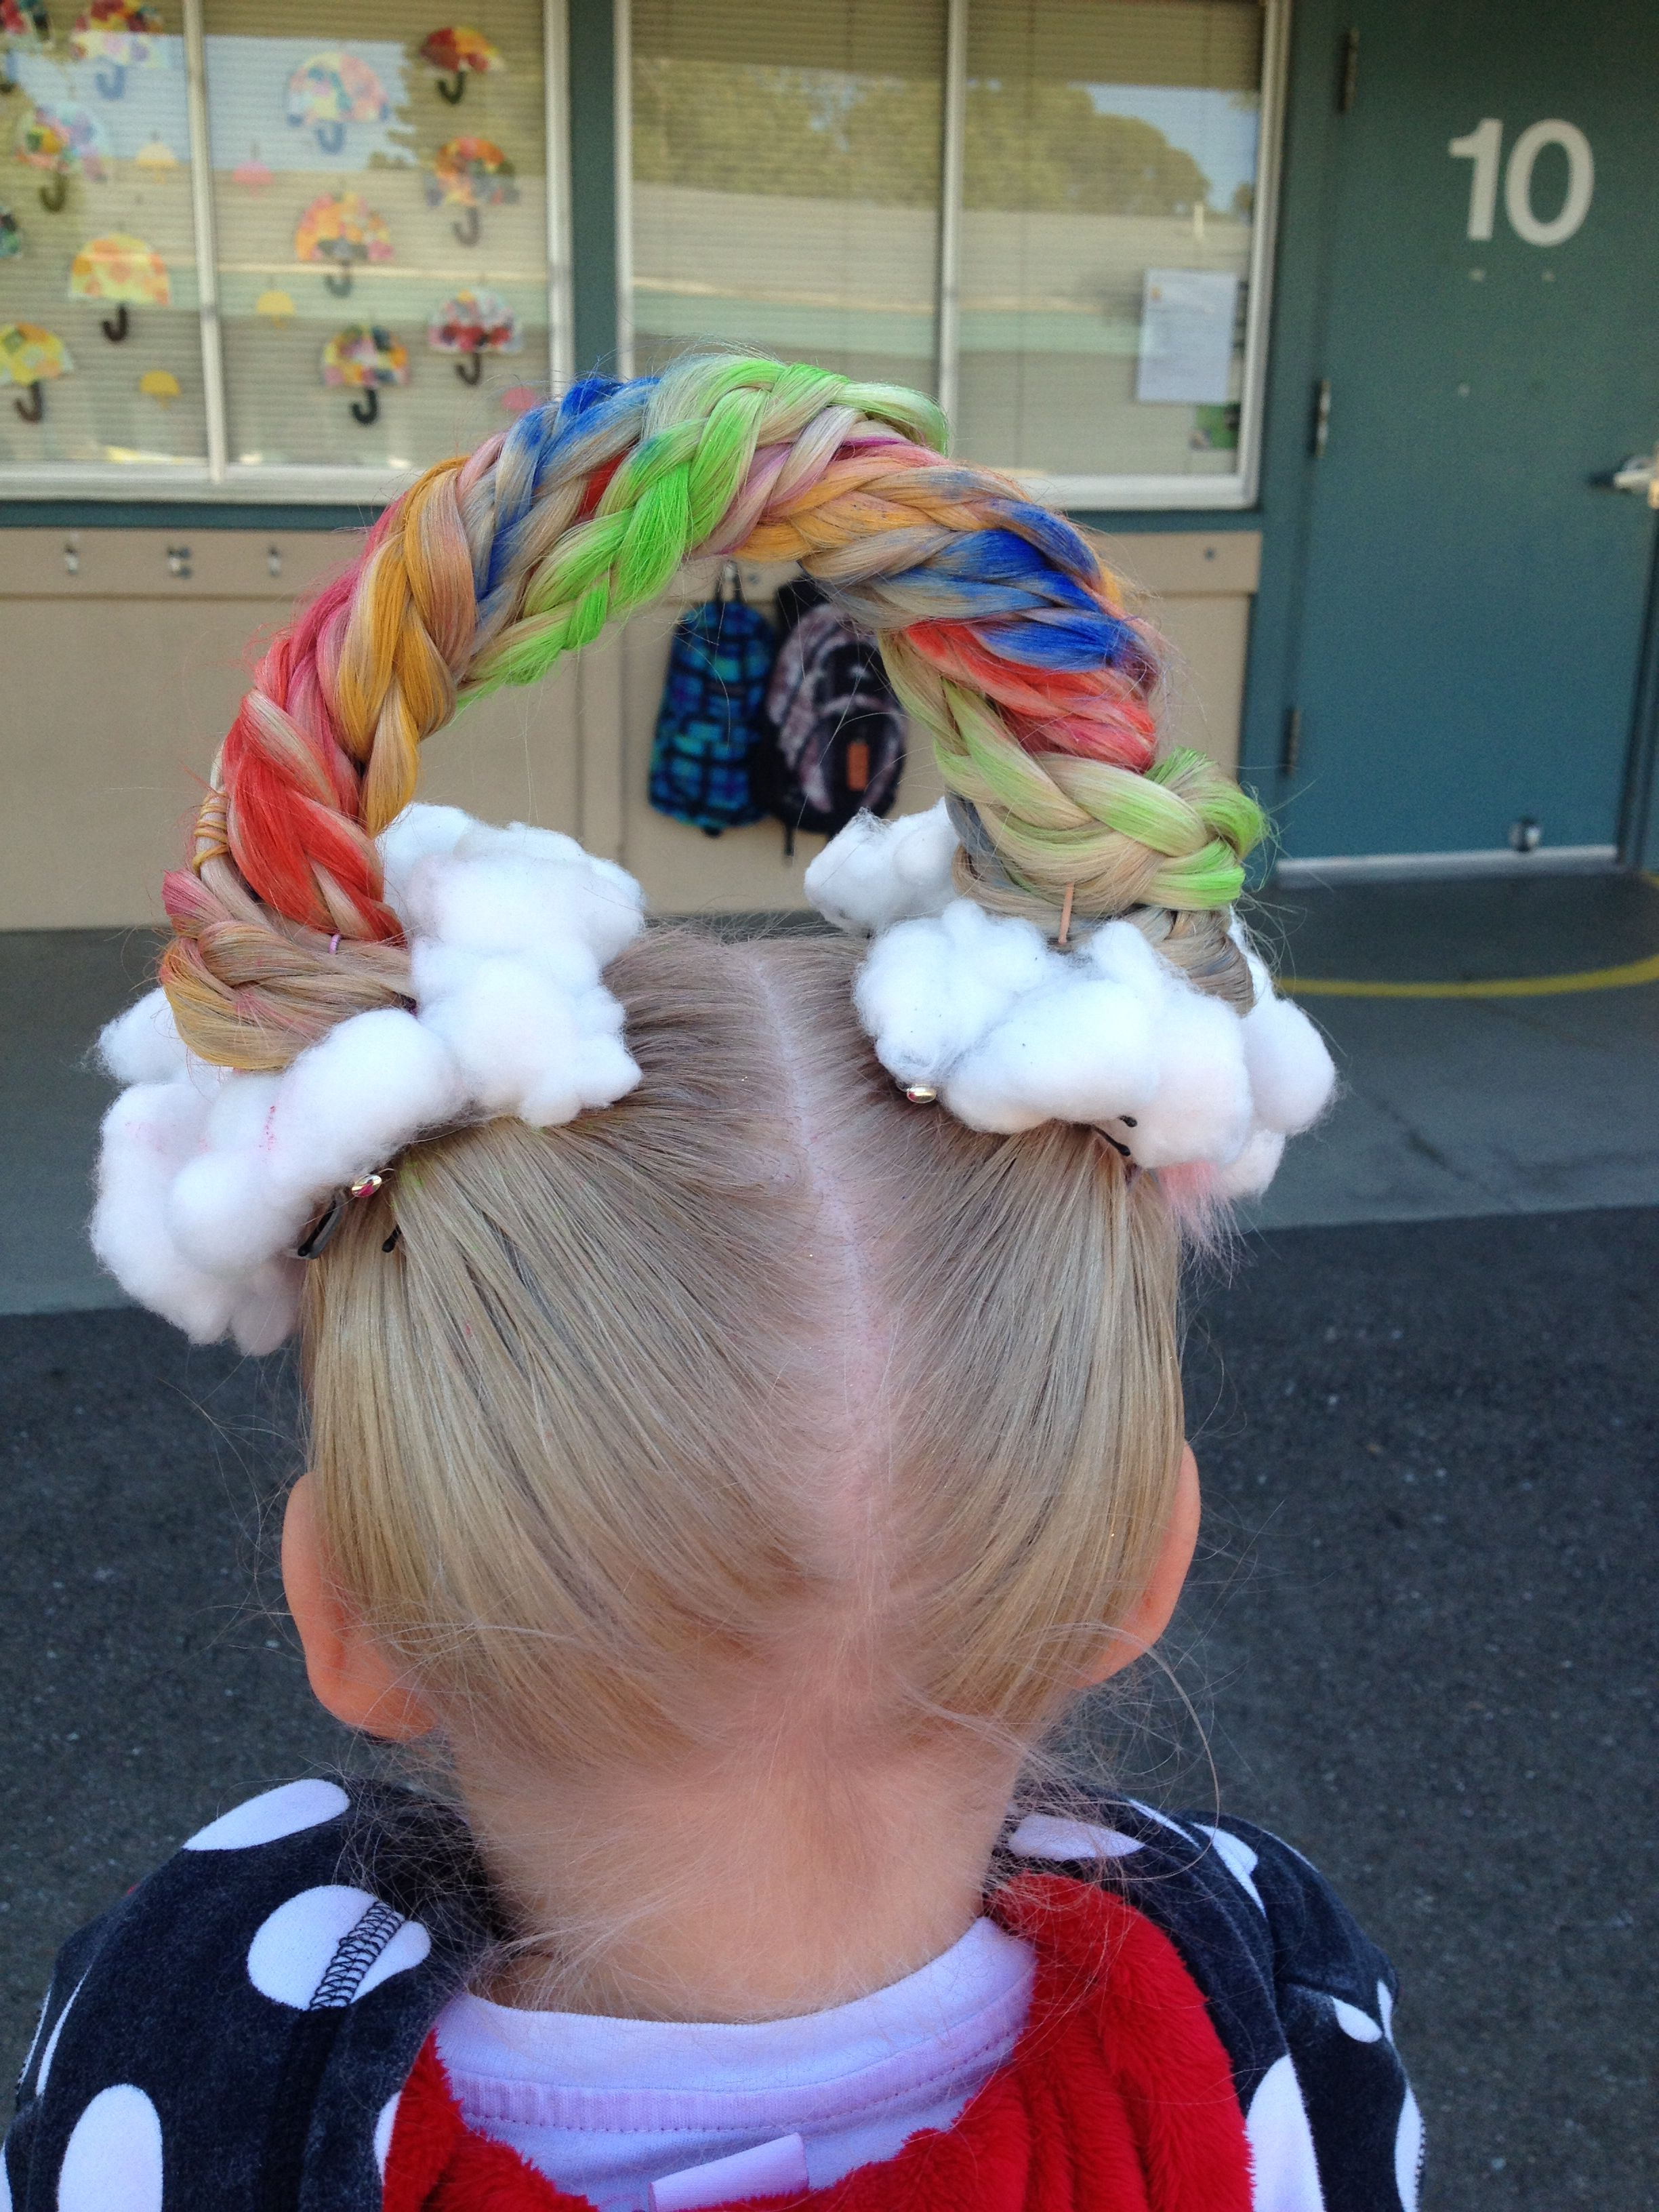 Kid Memes Funny Kid Photos Gifs Videos Crazy Hair Day At School Wacky Hair Wacky Hair Days